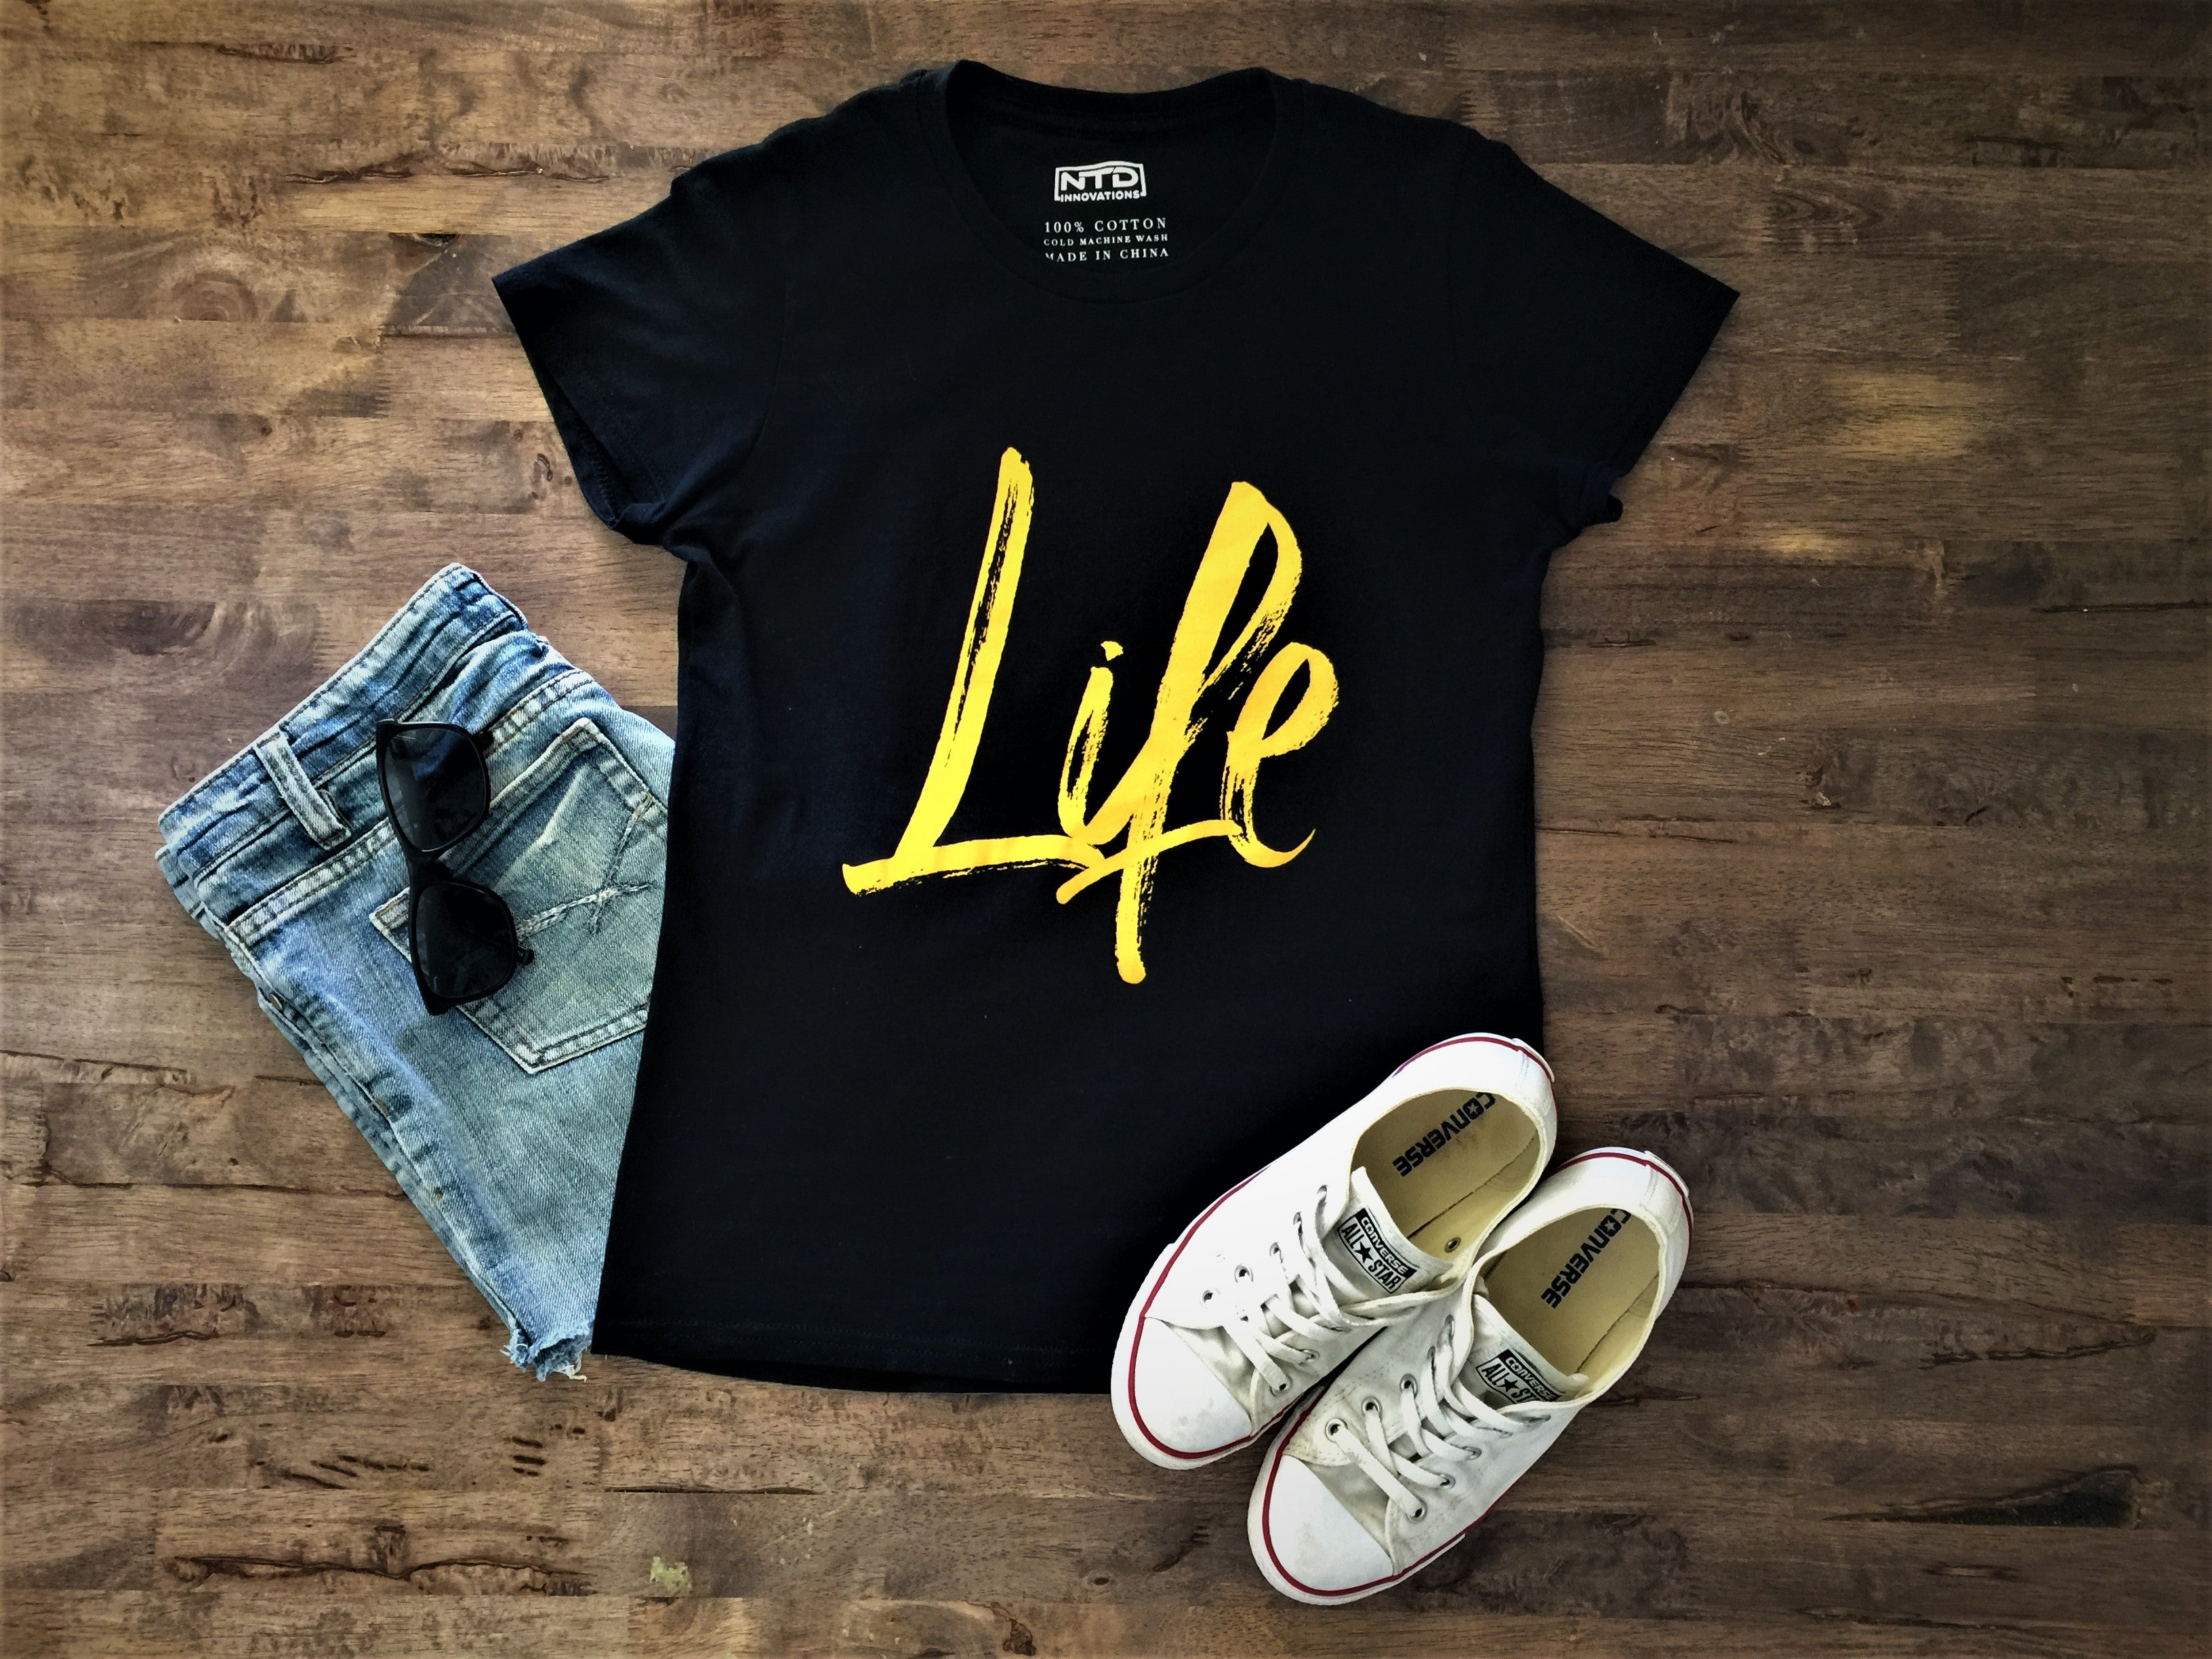 Life tshirt - Ladies black with yellow typography streetwear casual tshirt styled with converse, sunnies shorts